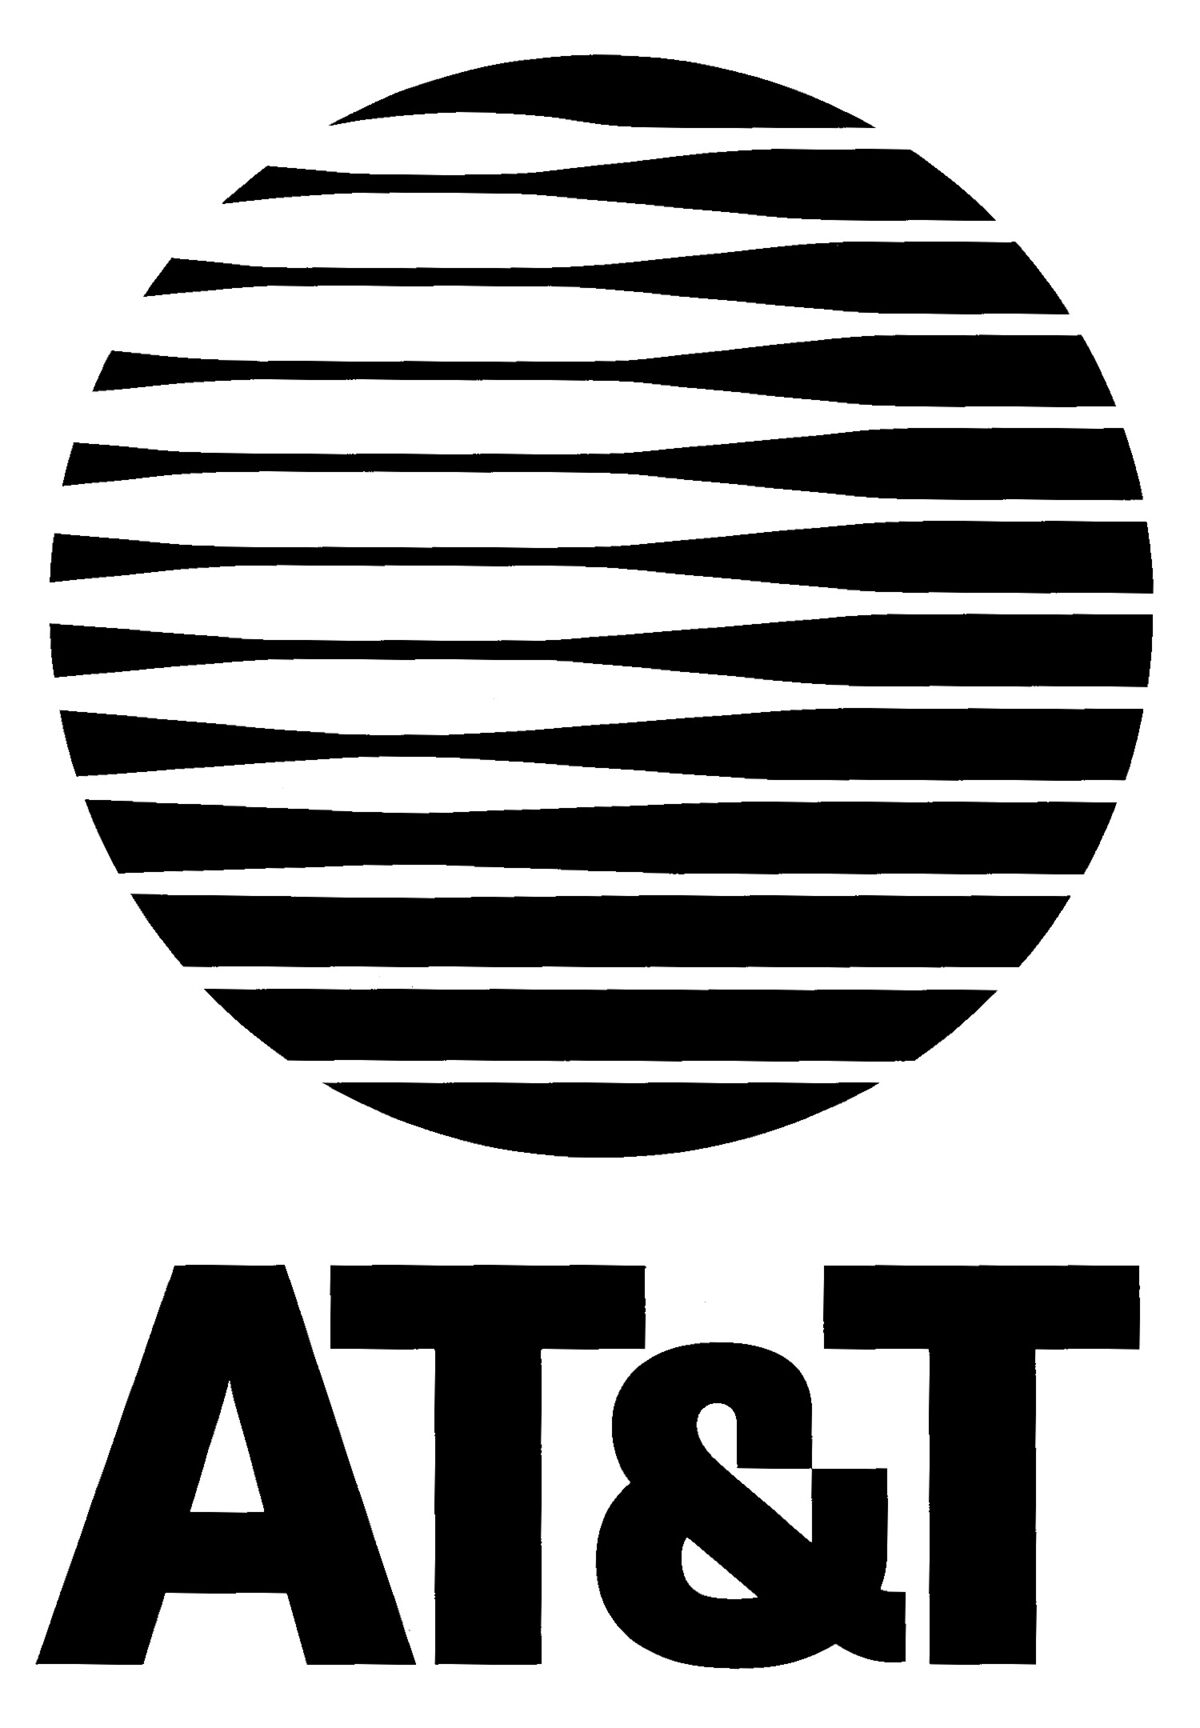 Saul Bass, AT&T logo. From Saul Bass: A Life in Film & Design. Courtesy of Laurence King Publishing.